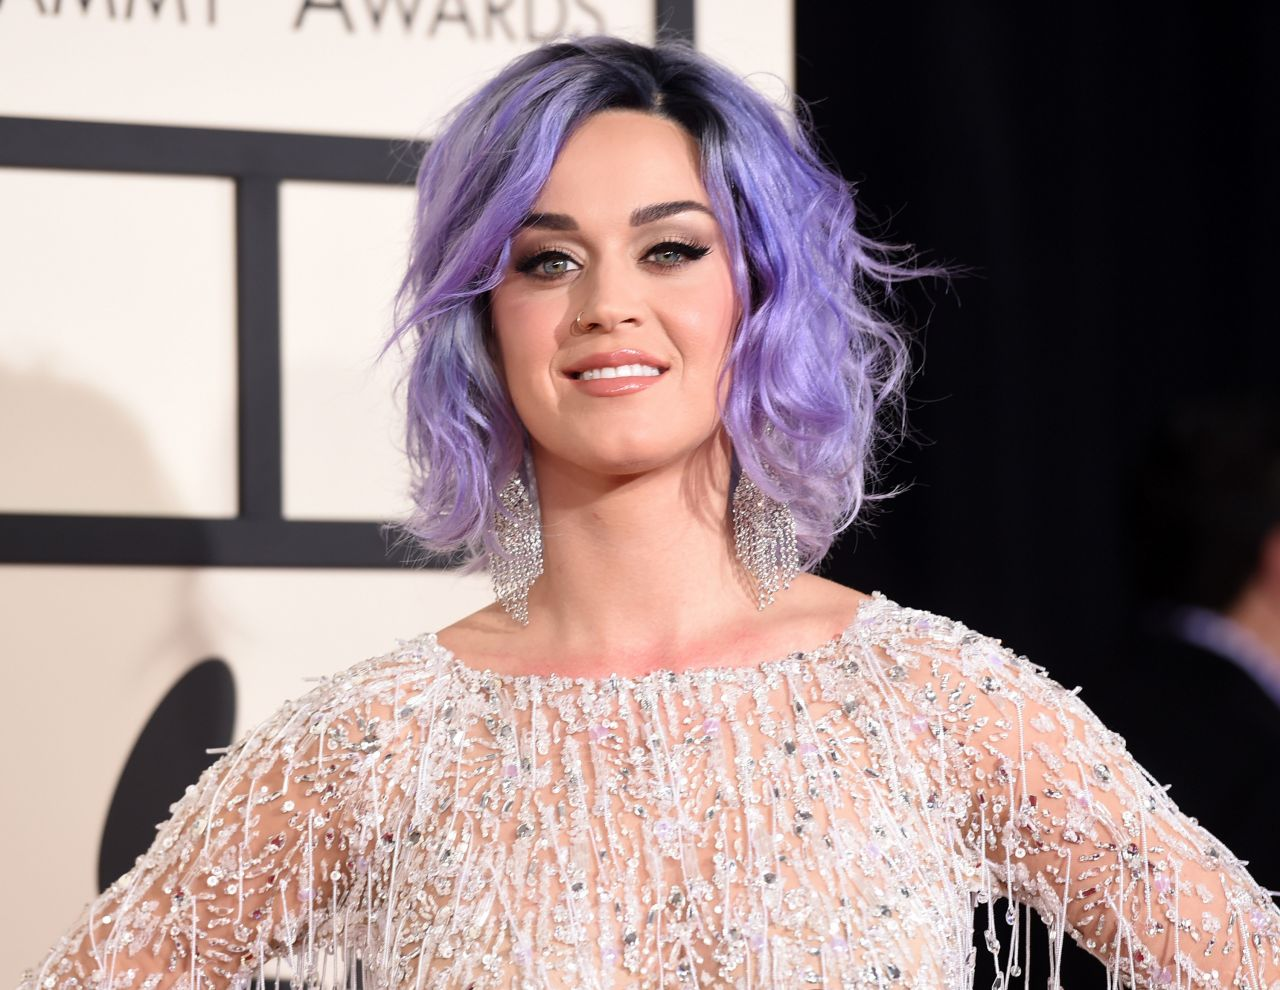 Katy Perry – 2015 Grammy Awards in Los Angeles Katy Perry